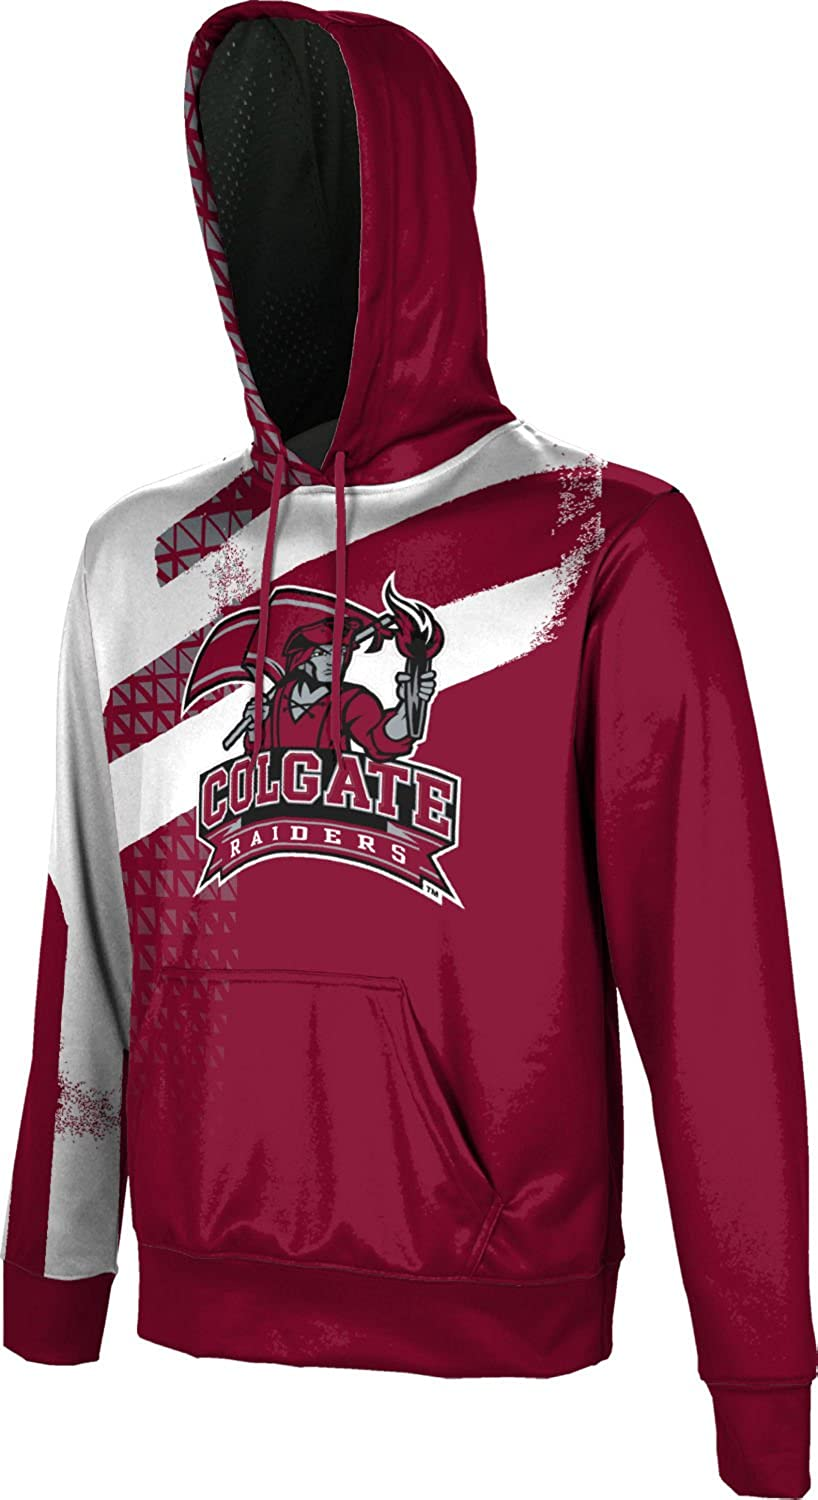 Colgate University Mens Pullover Hoodie School Spirit Sweatshirt Structure